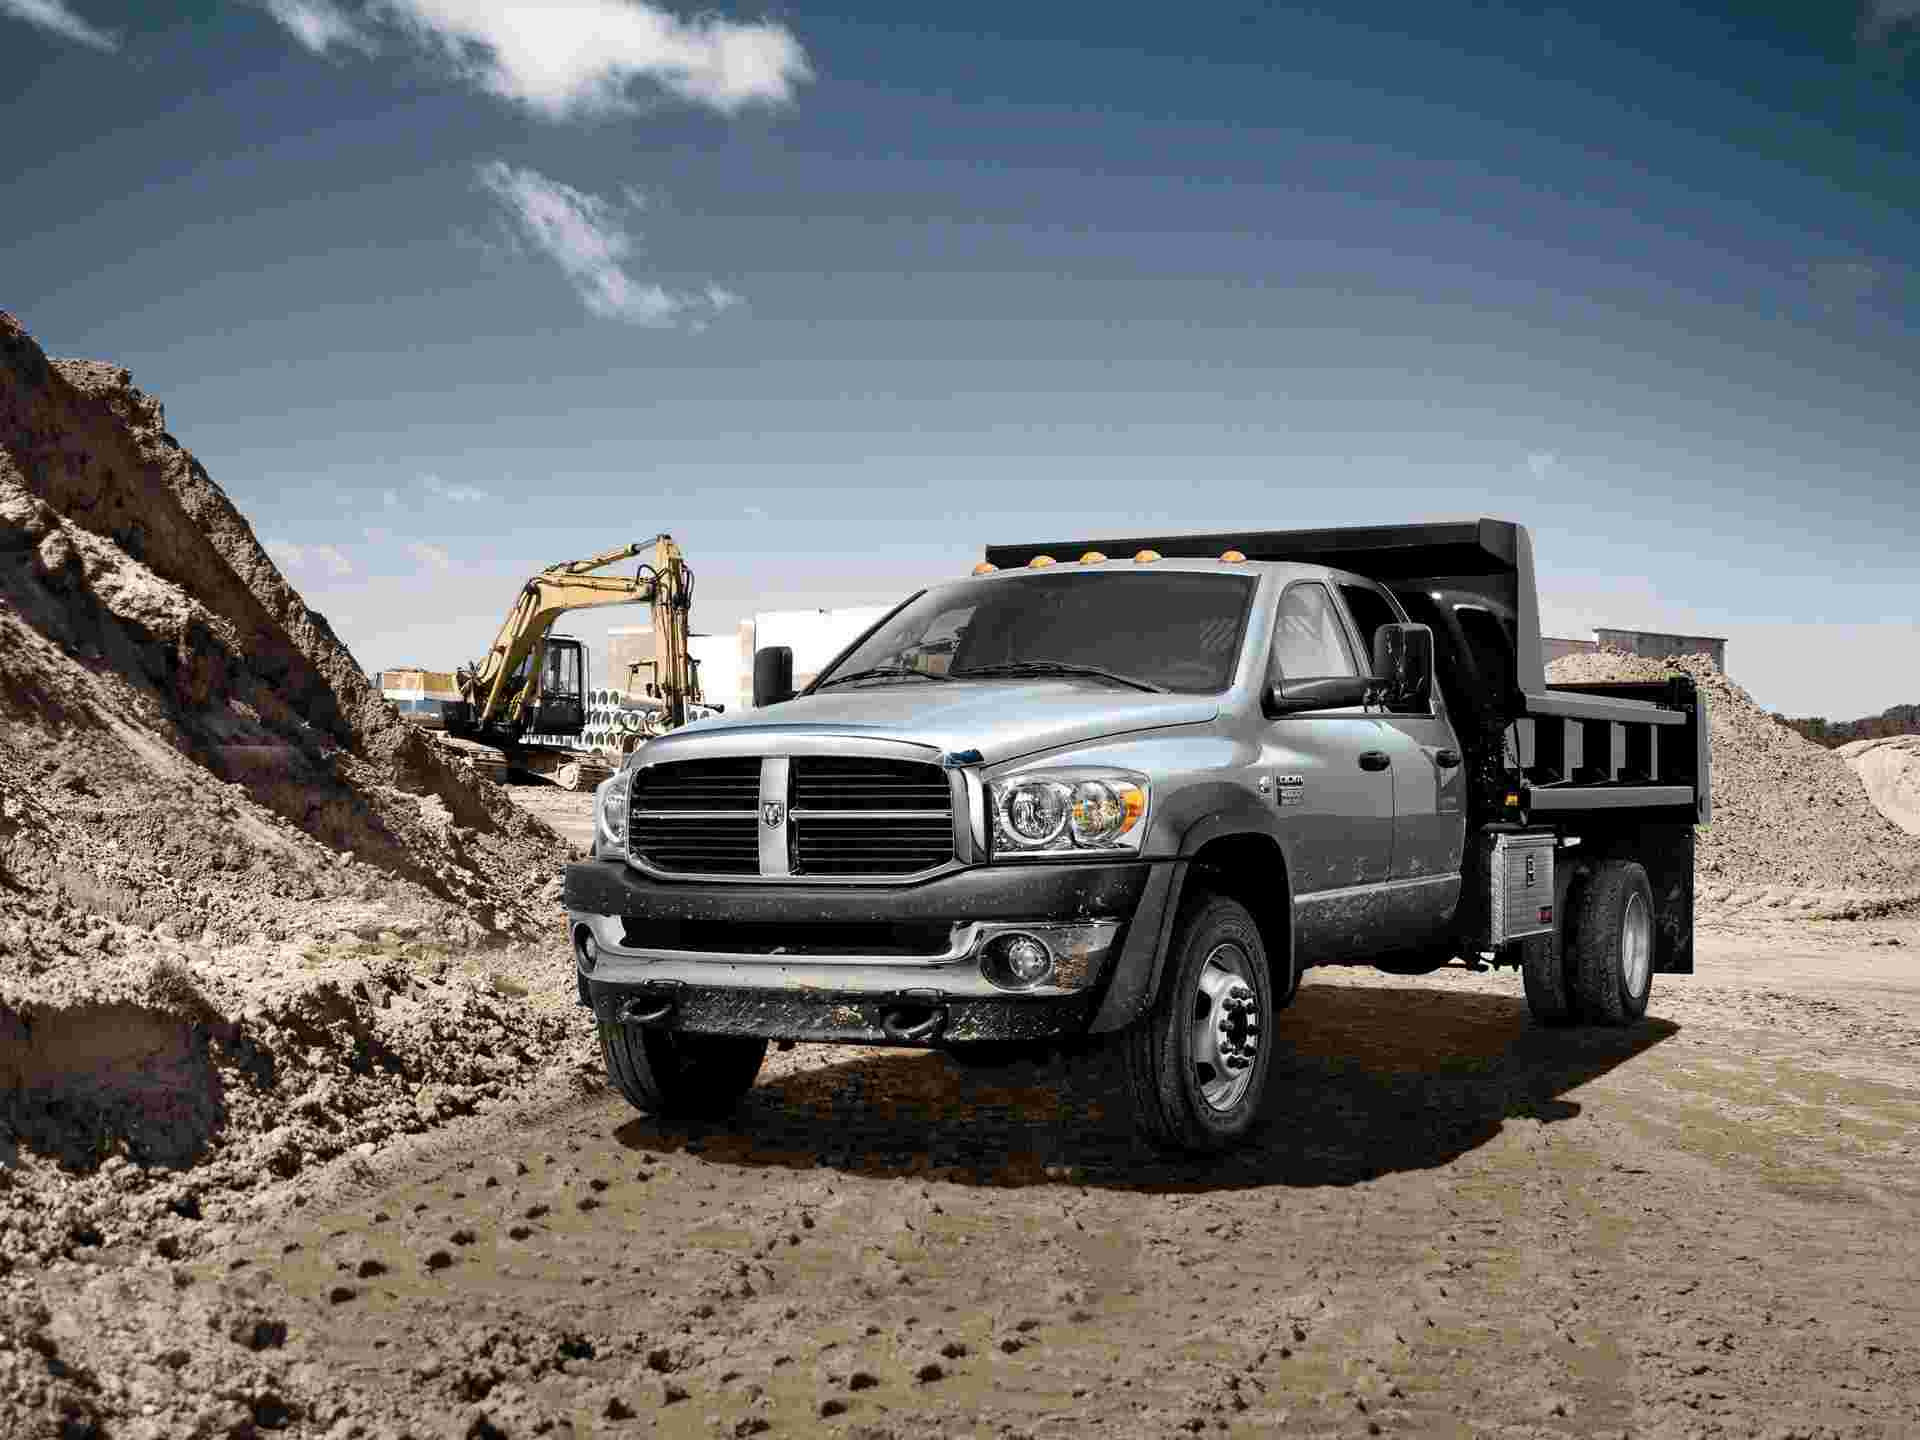 Dodge Ram 4500 06 wallpaper   Dodge Truck   Trucks Buses   Wallpaper 1920x1440